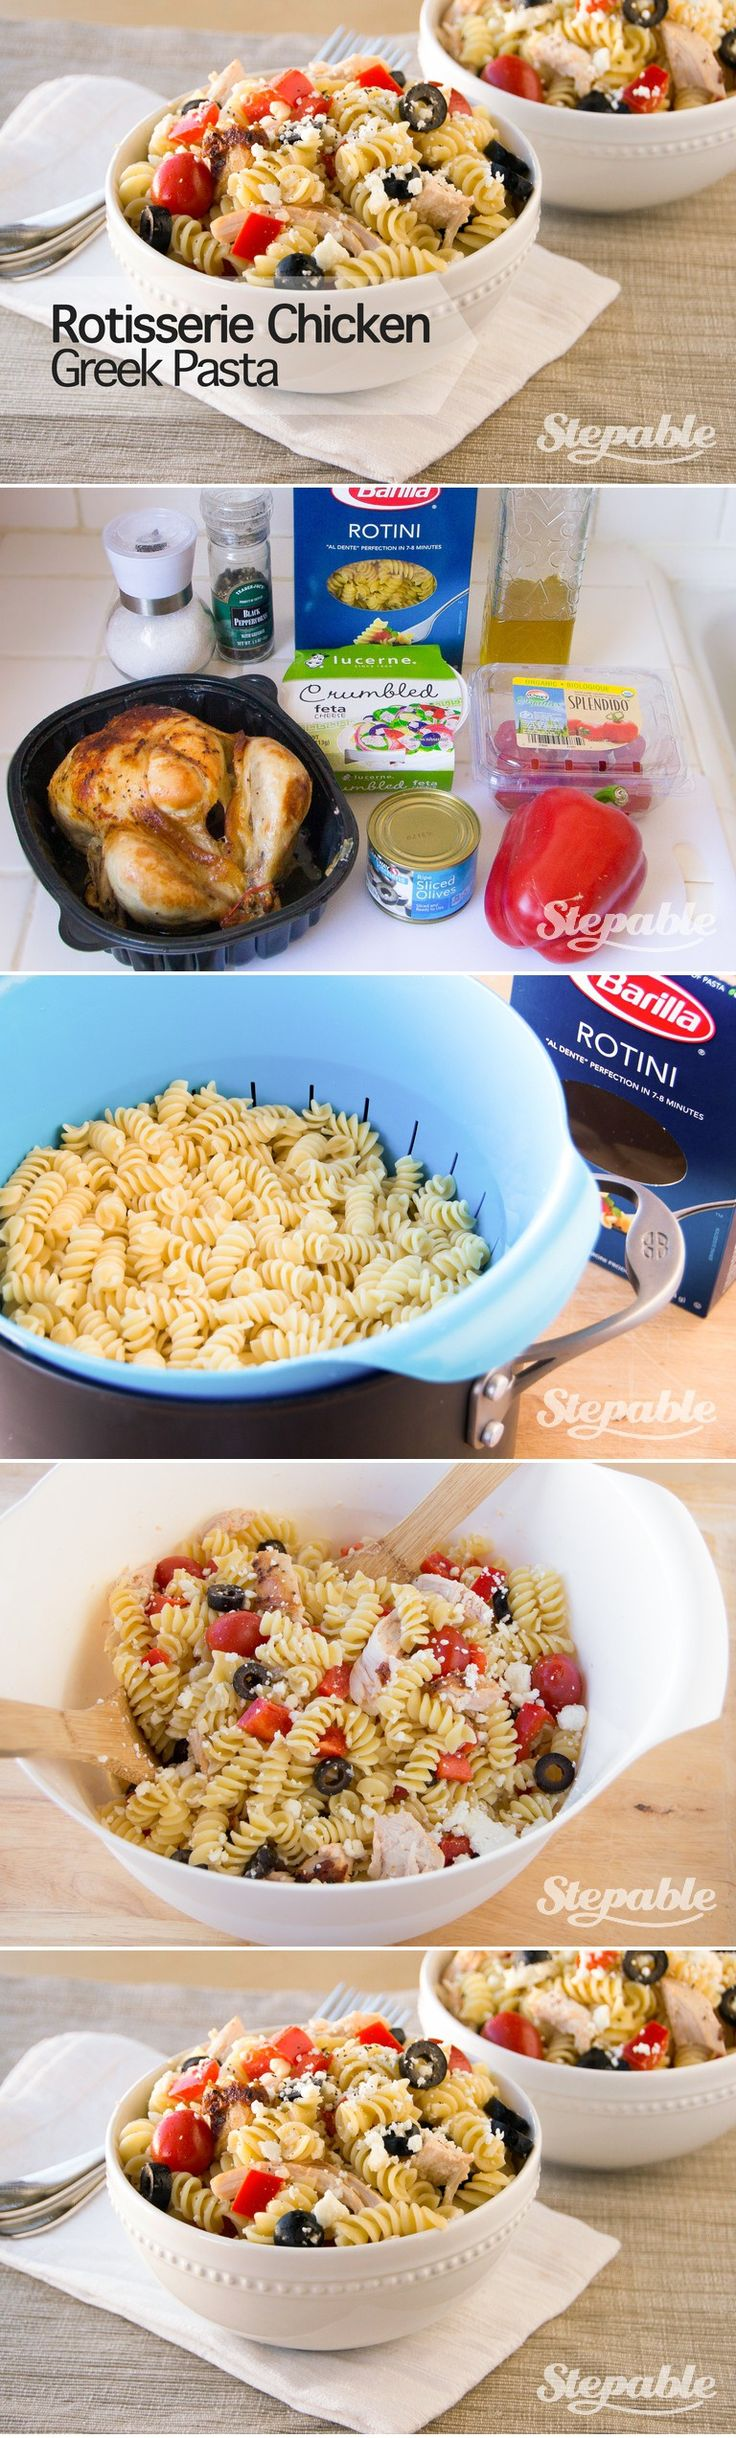 Rotisserie Chicken Greek Pasta in about 15 minutes with store-bought rotisserie chicken @stepable #recipes #dinner